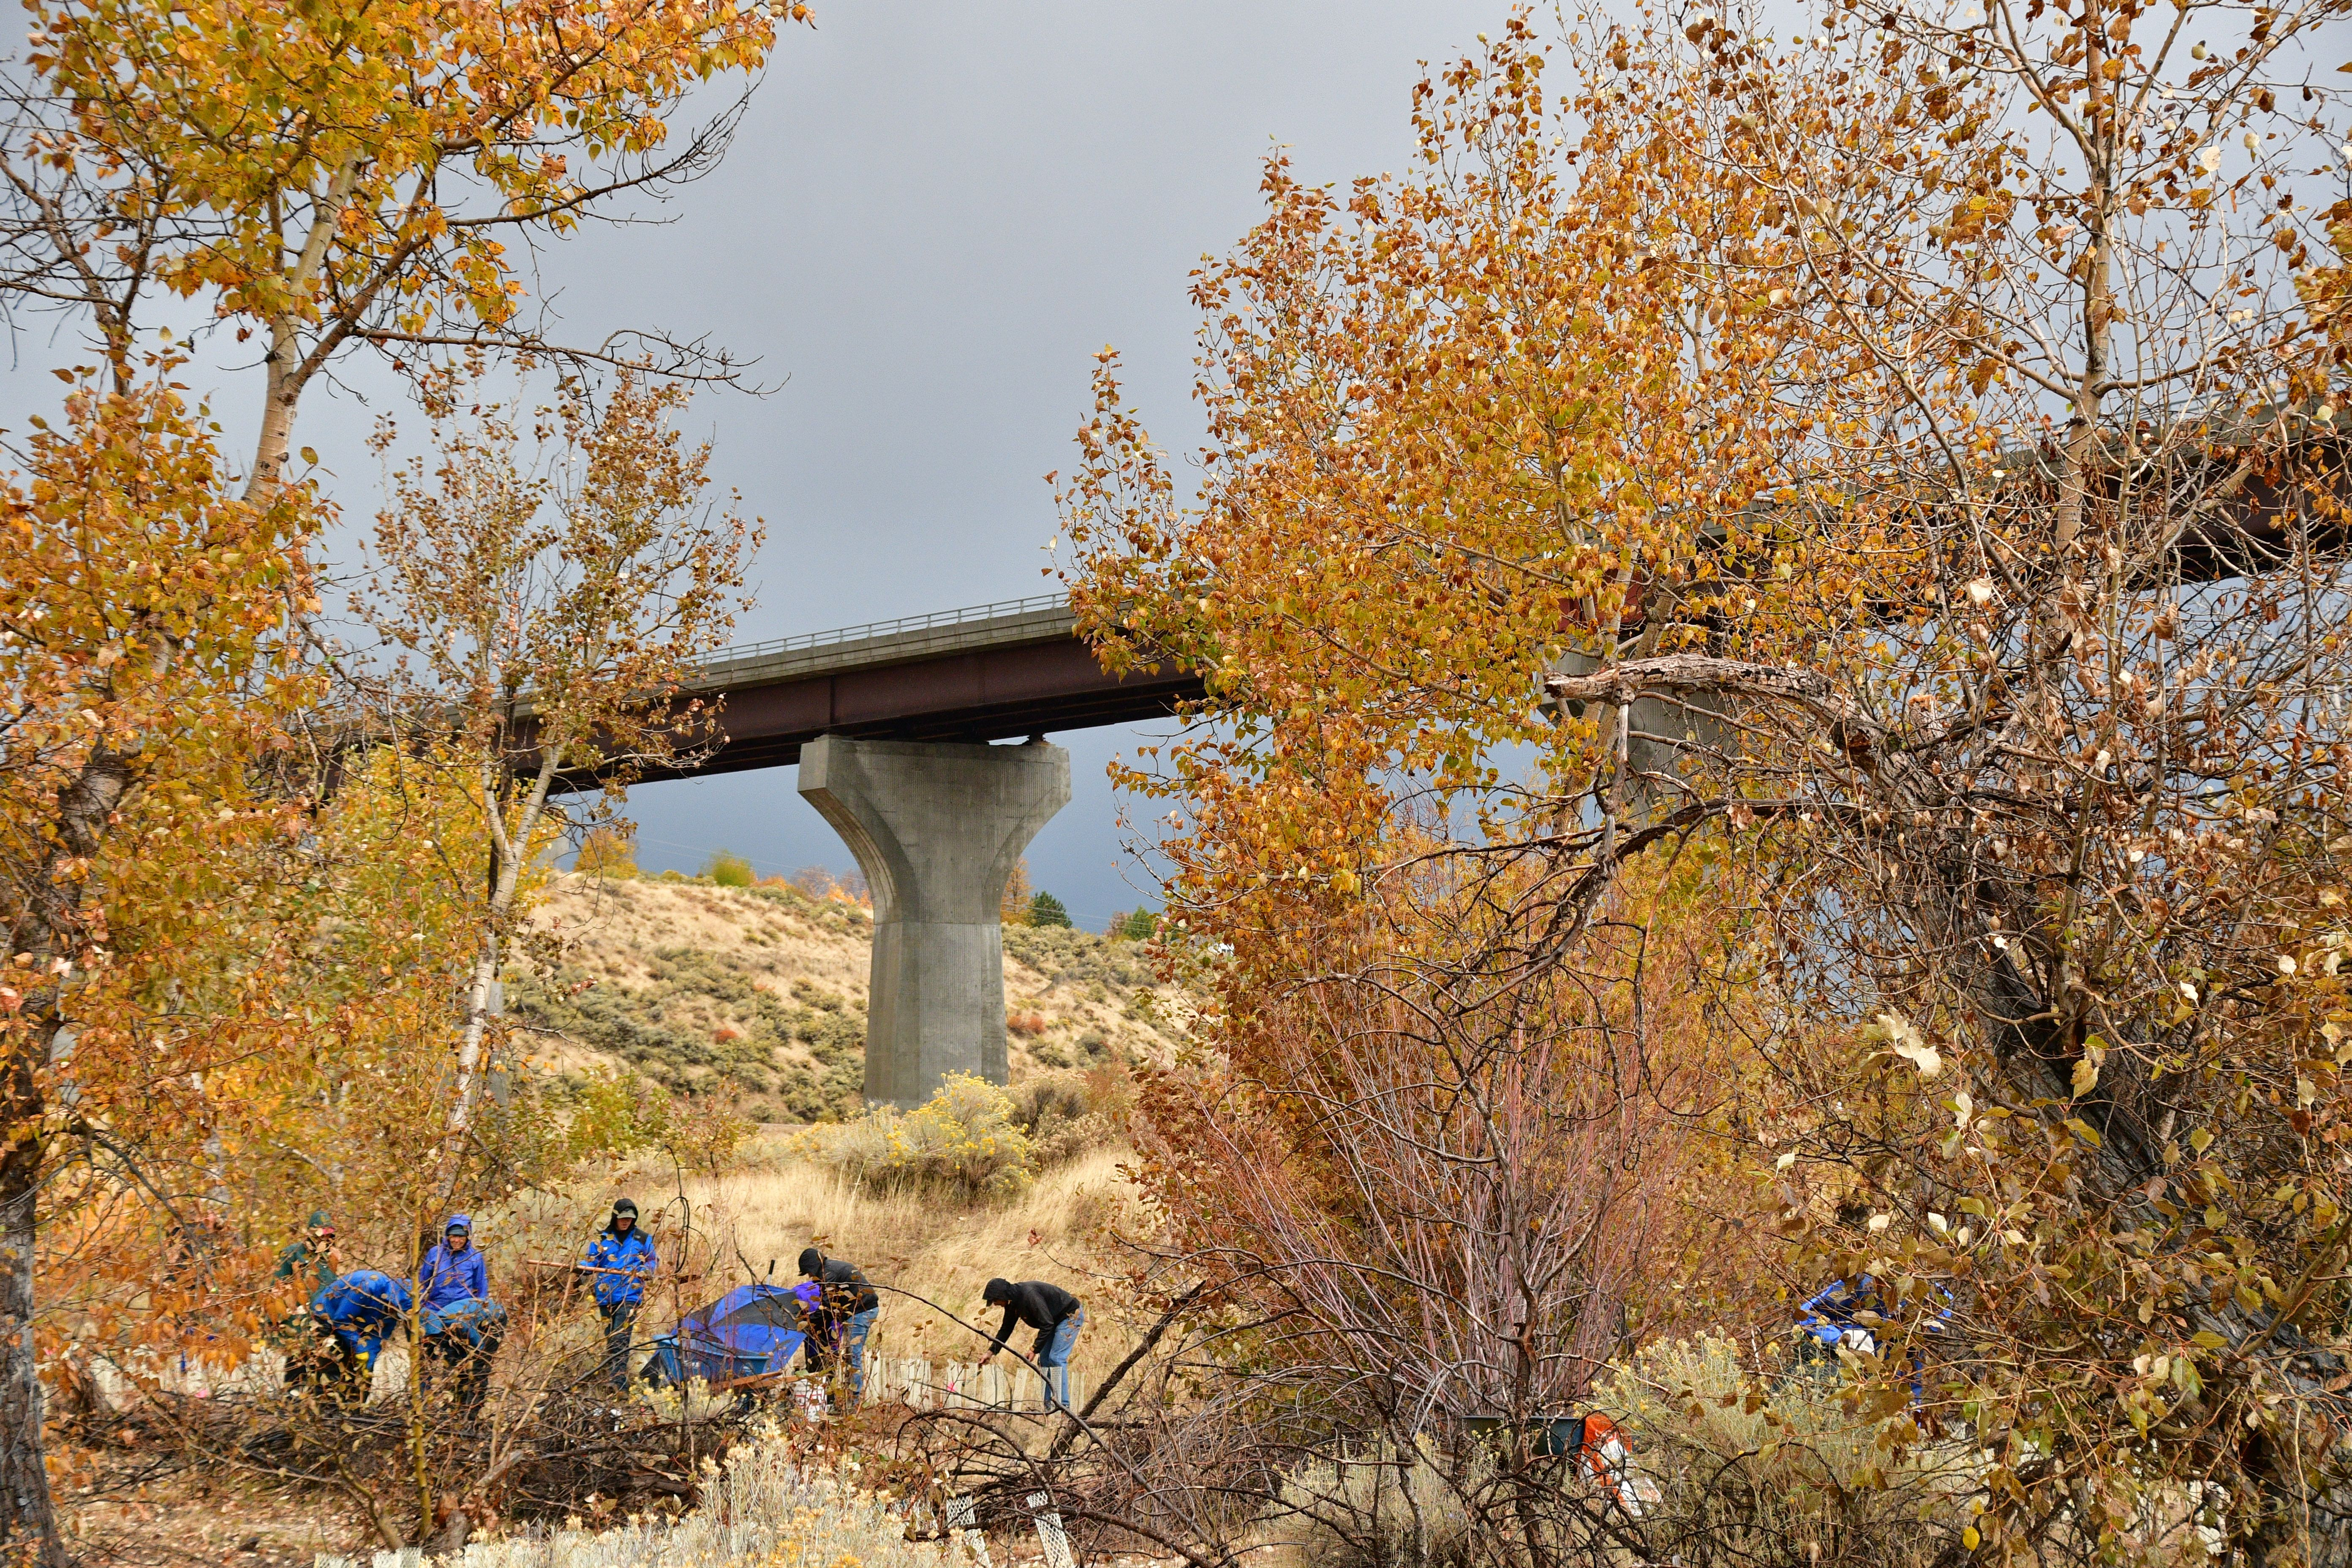 a scattered group of people stand underneath cottonwood trees with yellowing leaves. They are reaching down planting plants. The highway 21 bridge is in the background